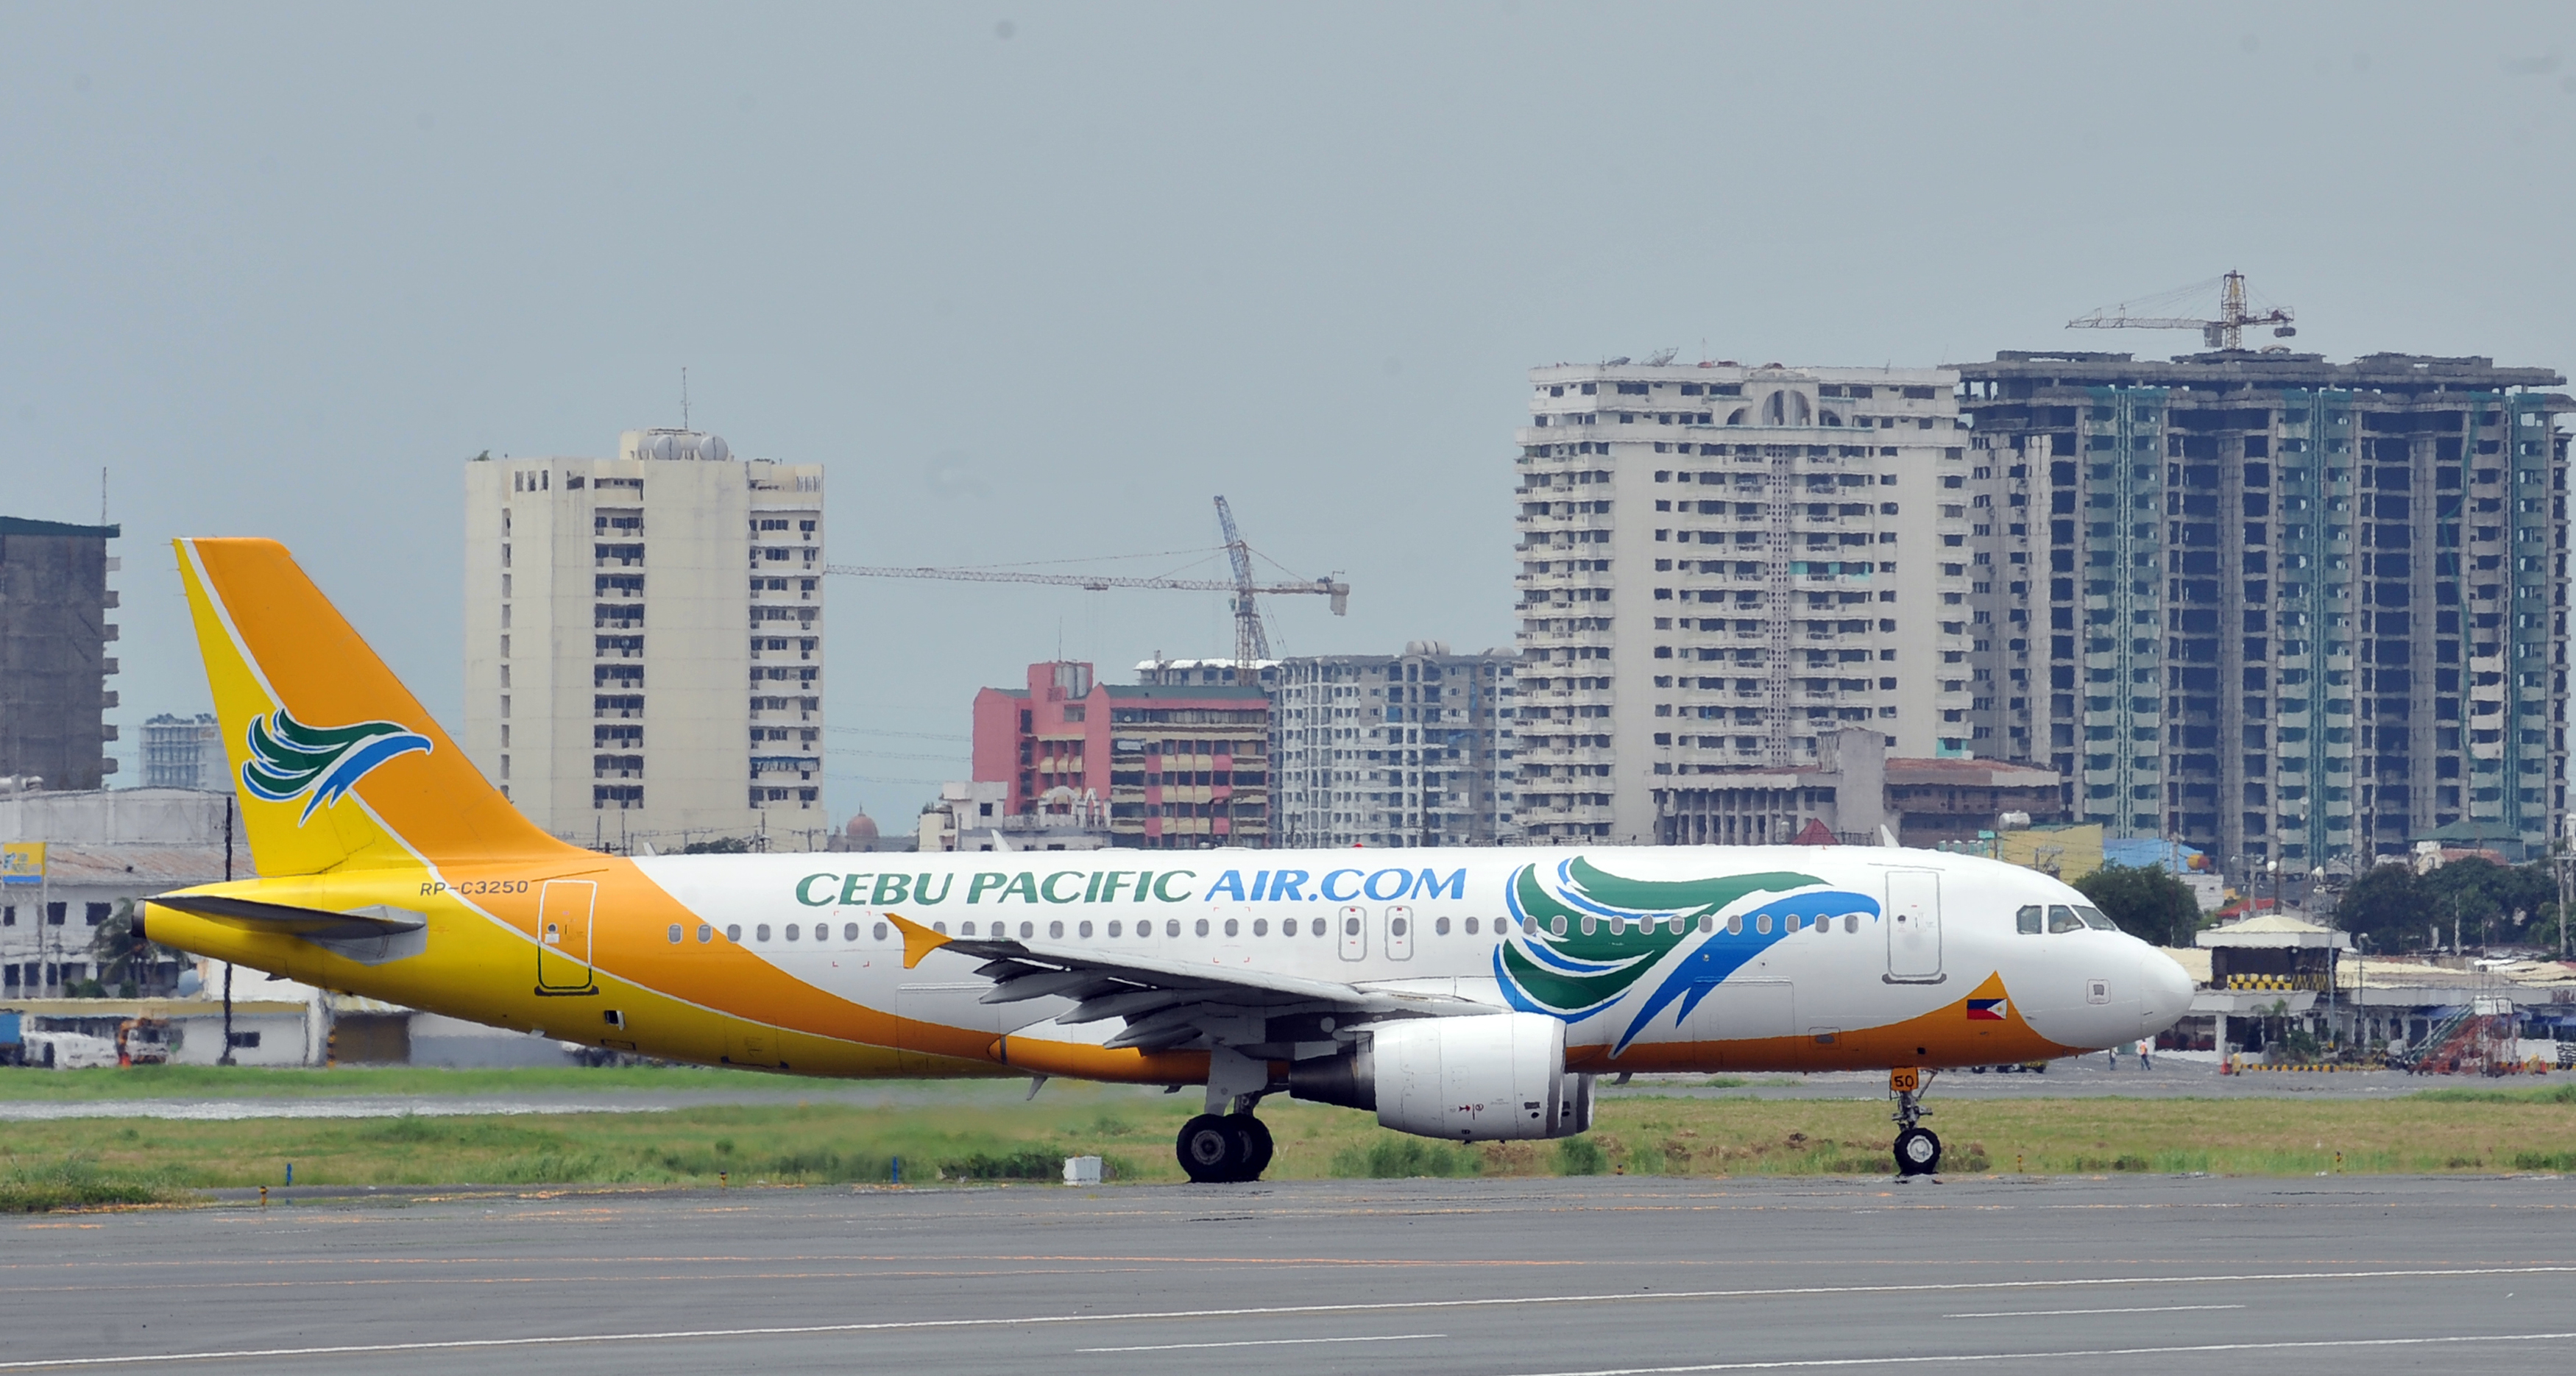 A plane of budget airline Cebu Pacific t